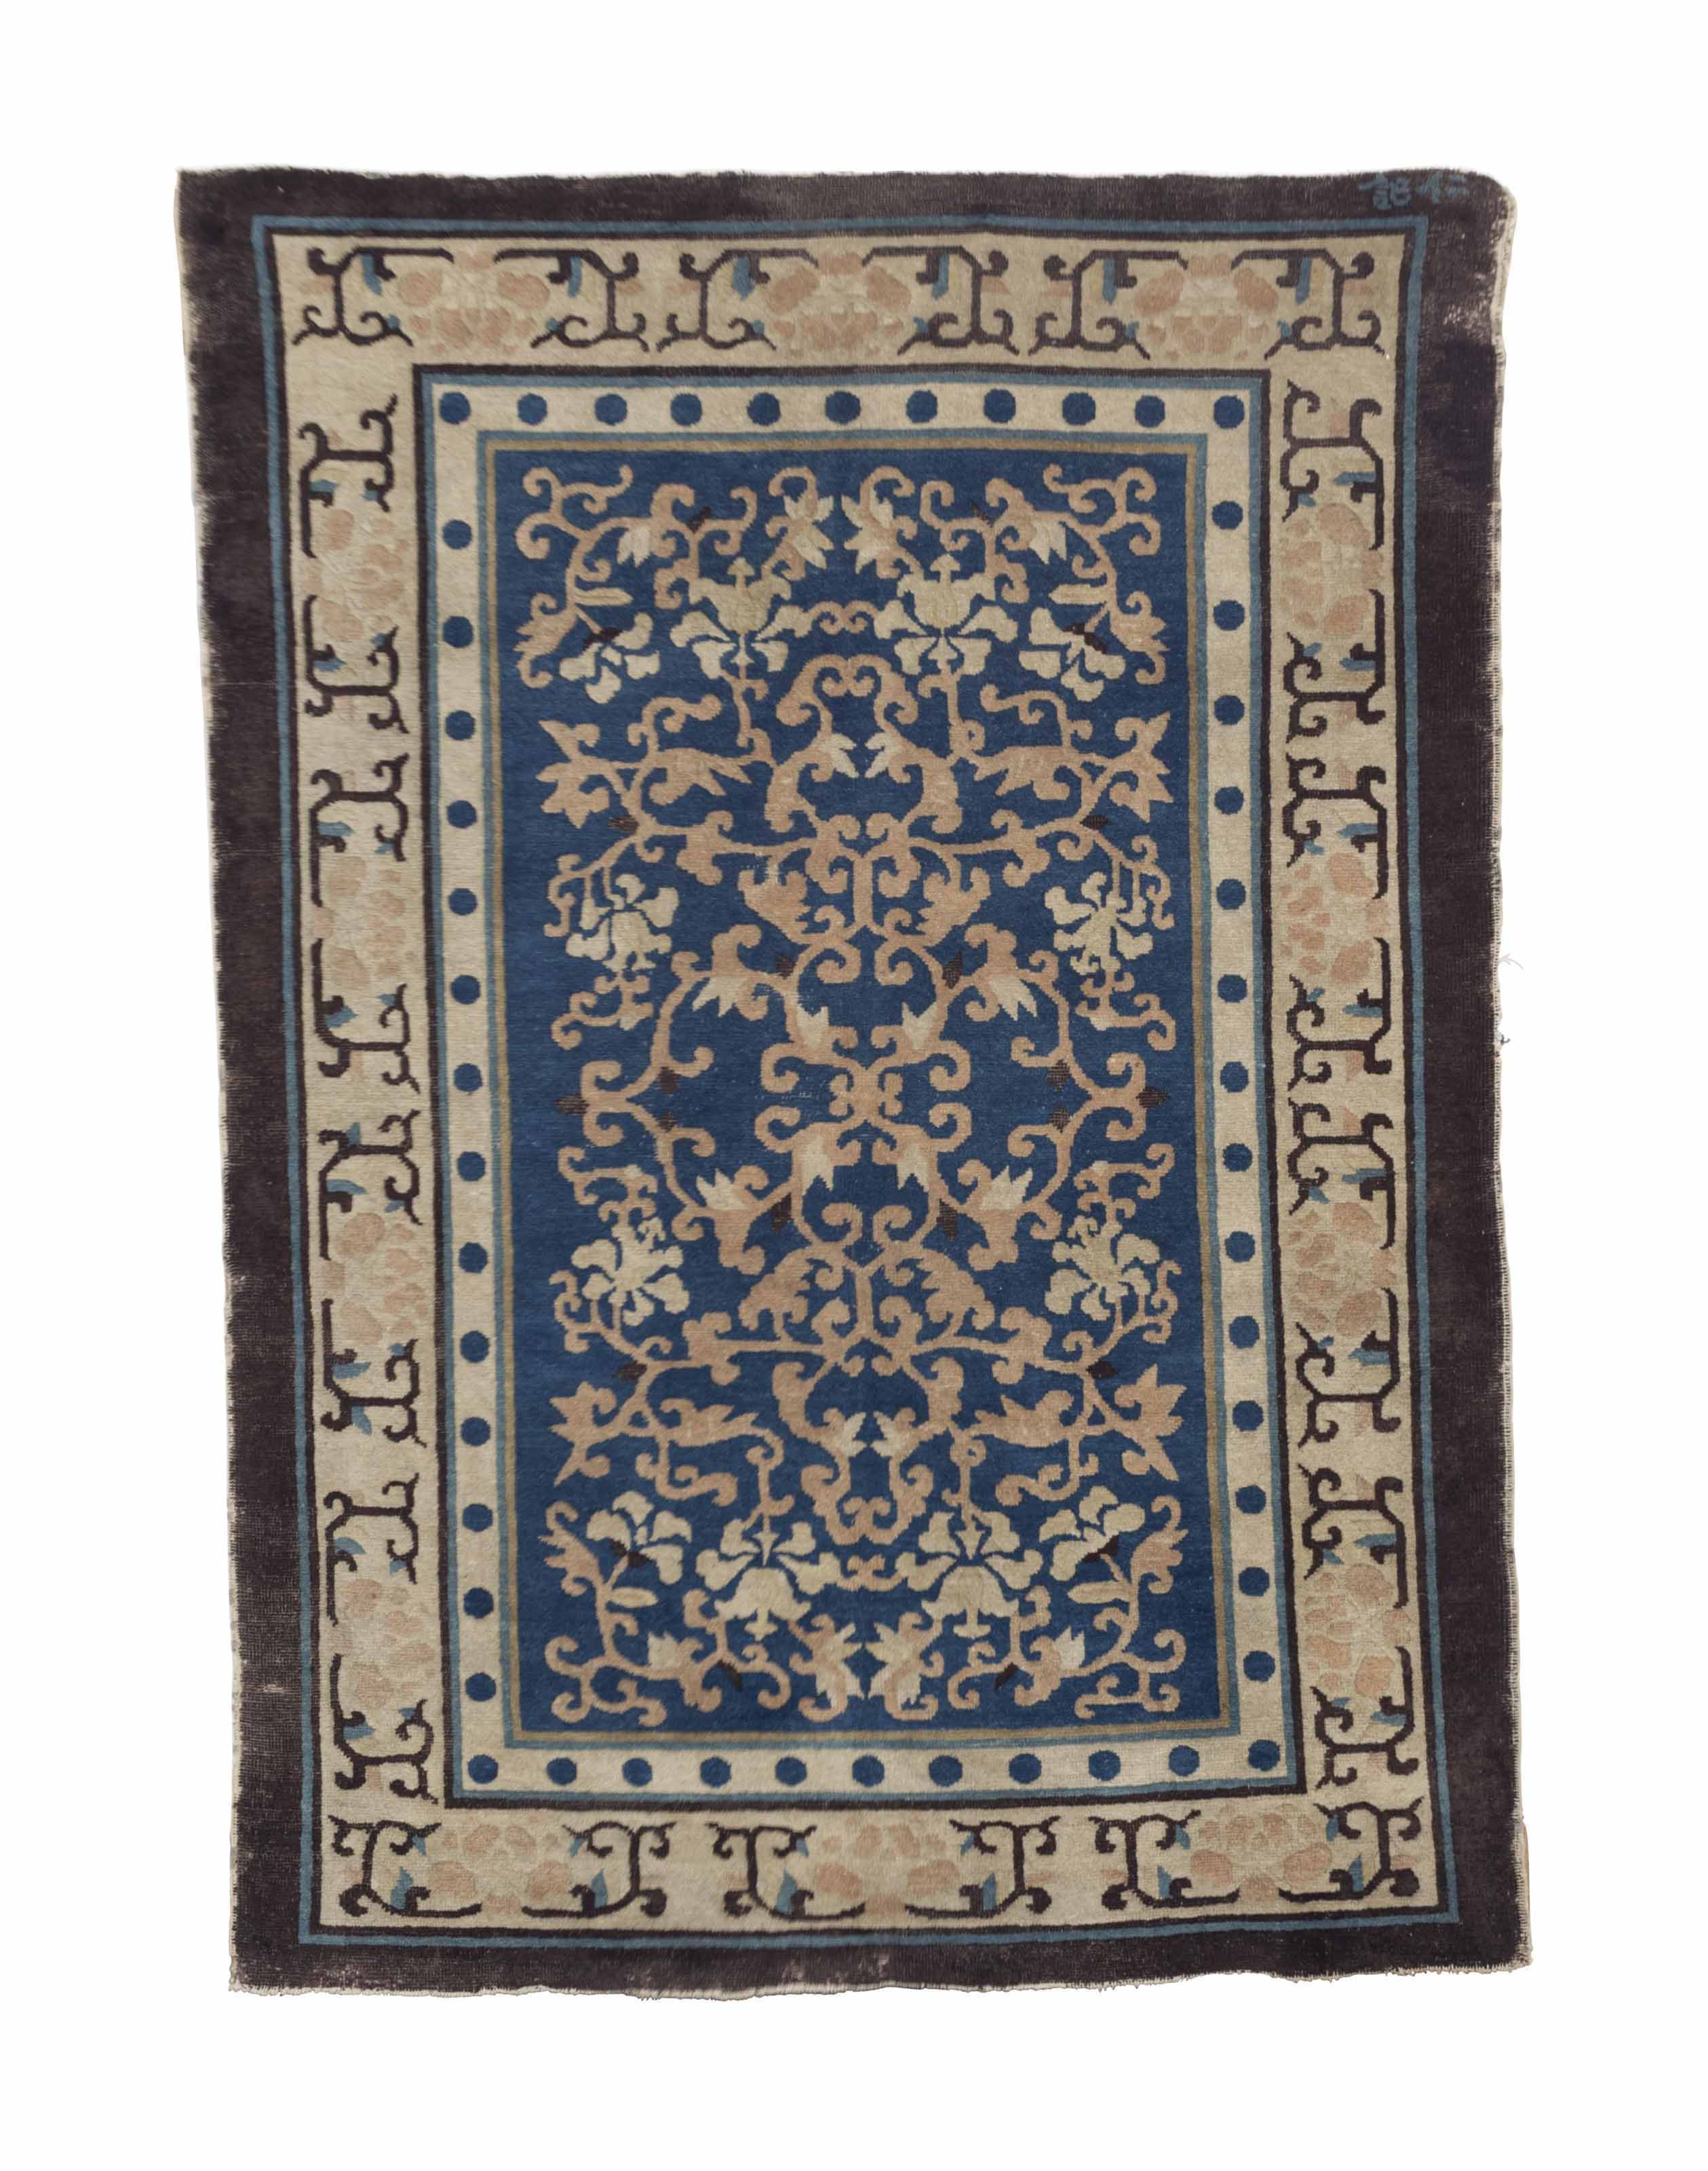 TWO CHINESE RUGS